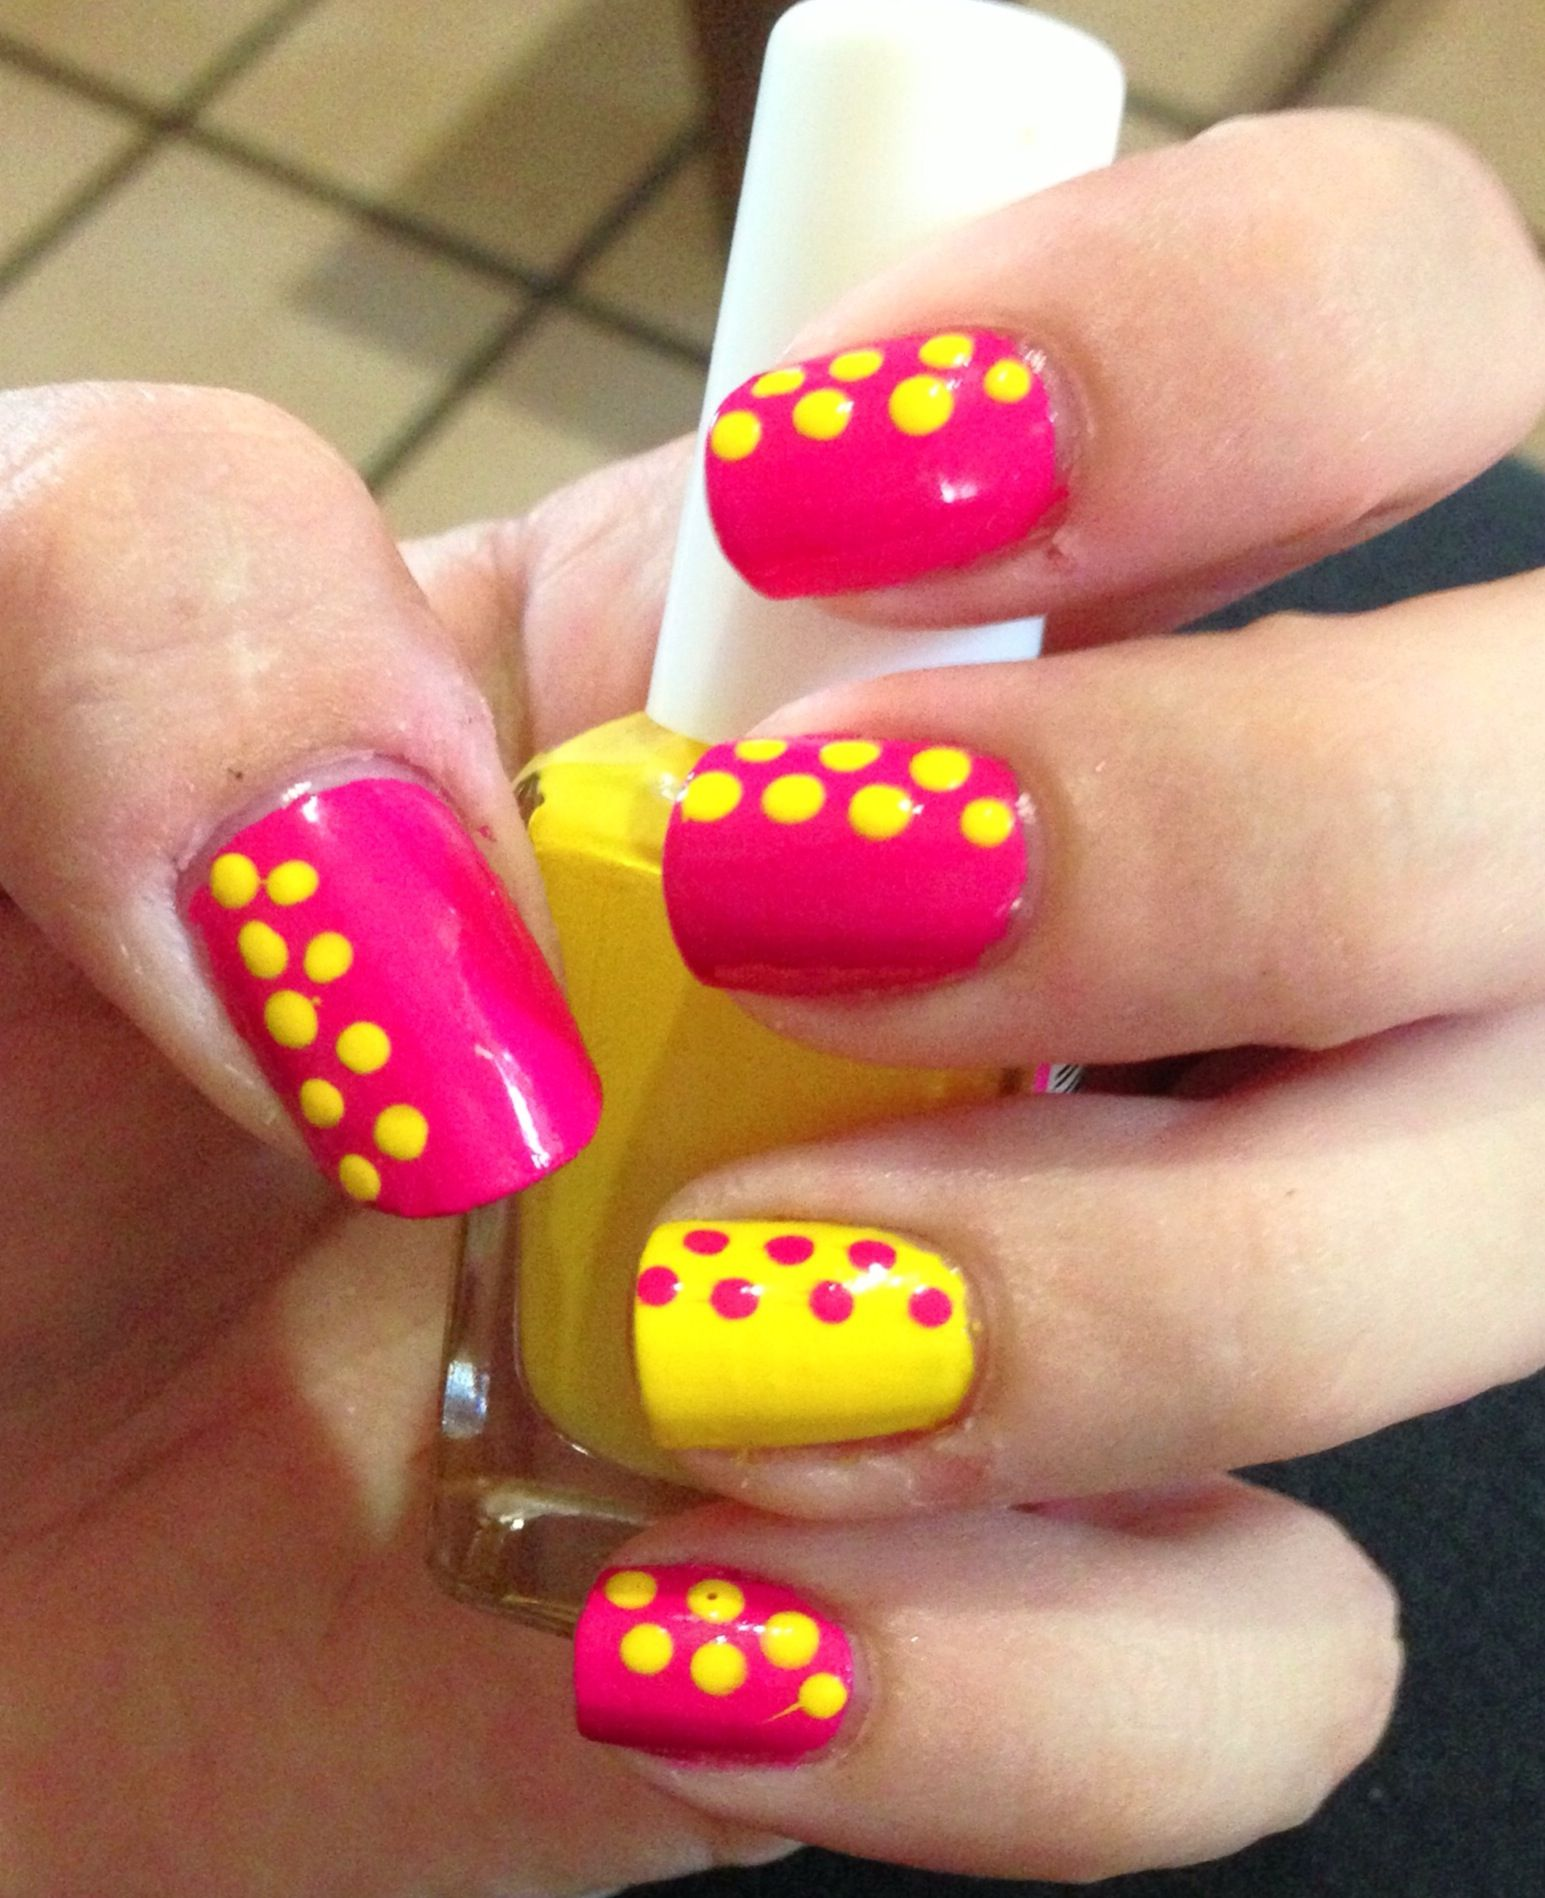 Polka dot easy nail art looks easy enough for me d nails